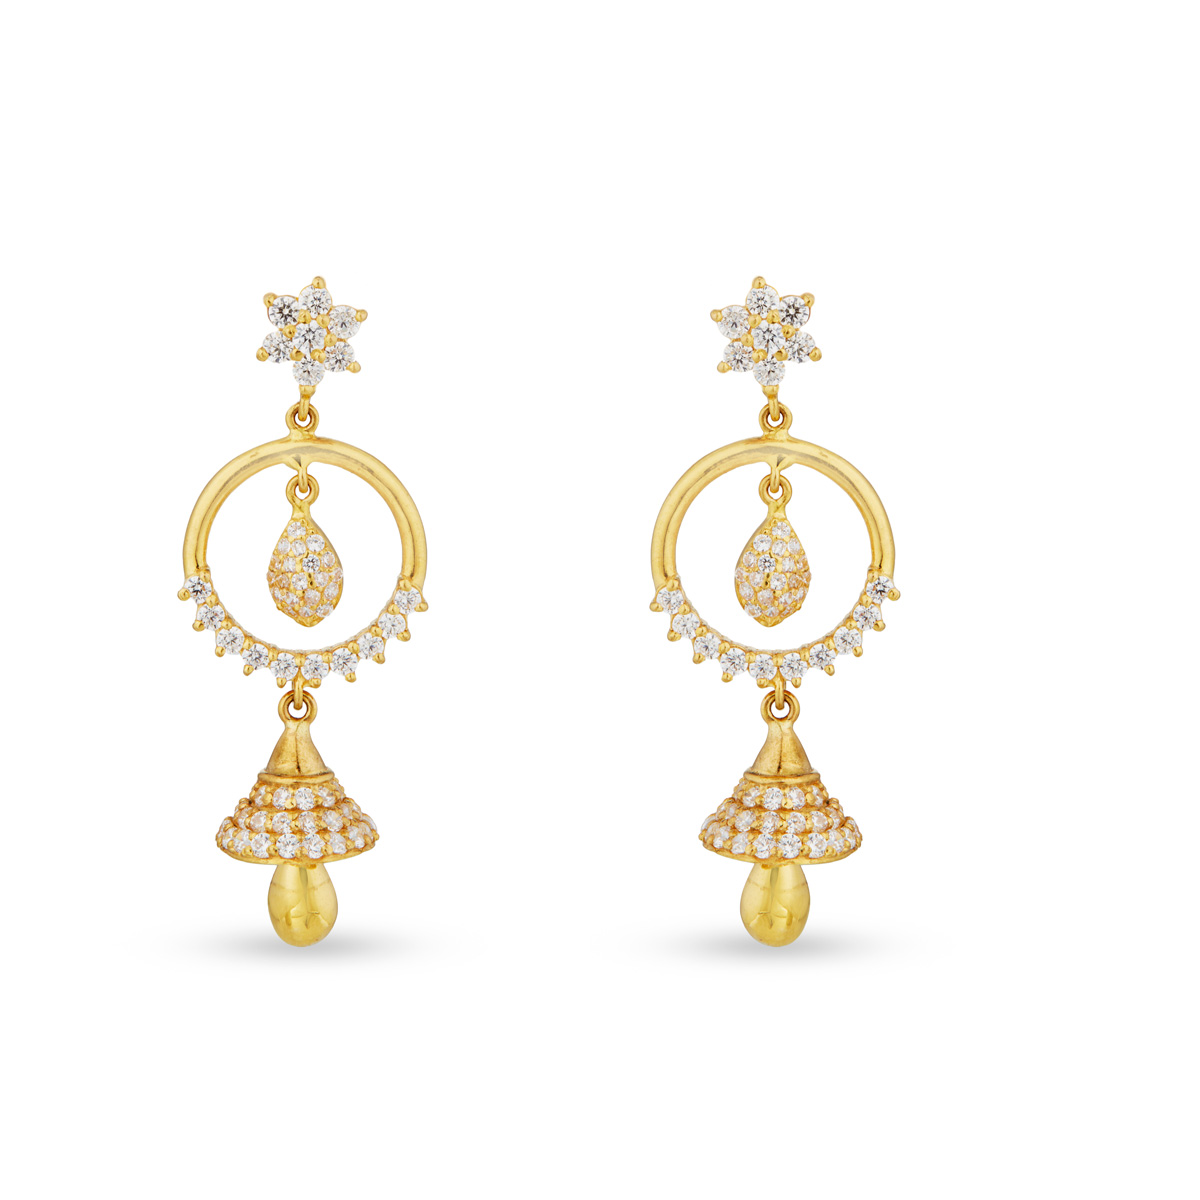 Ismita Earrings